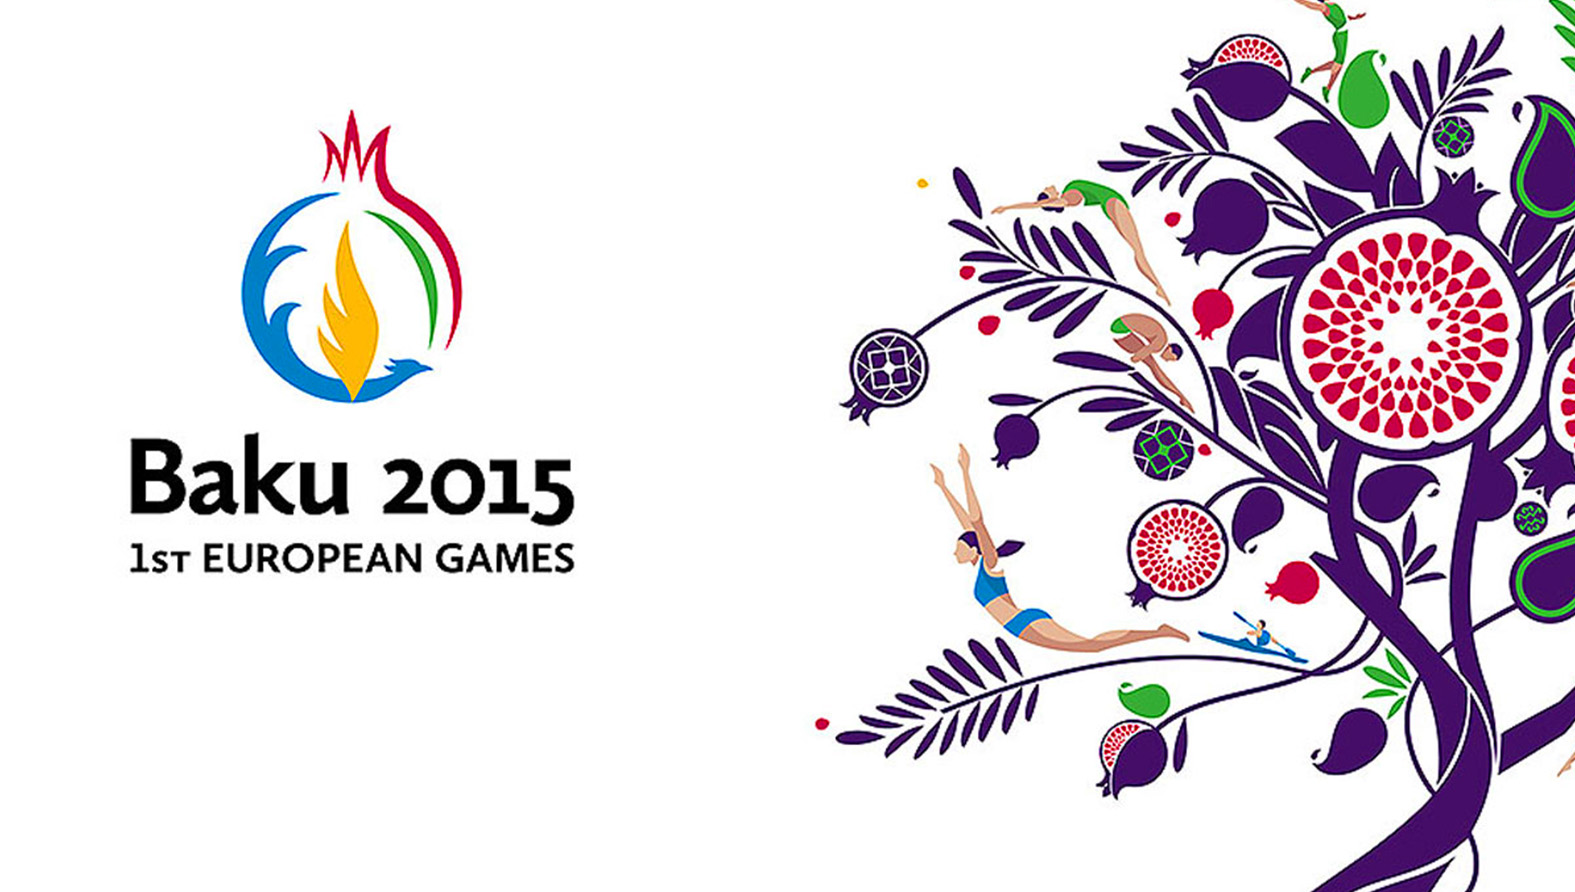 QUALIFICATION FOR BAKU 2015 EUROPEAN GAMES